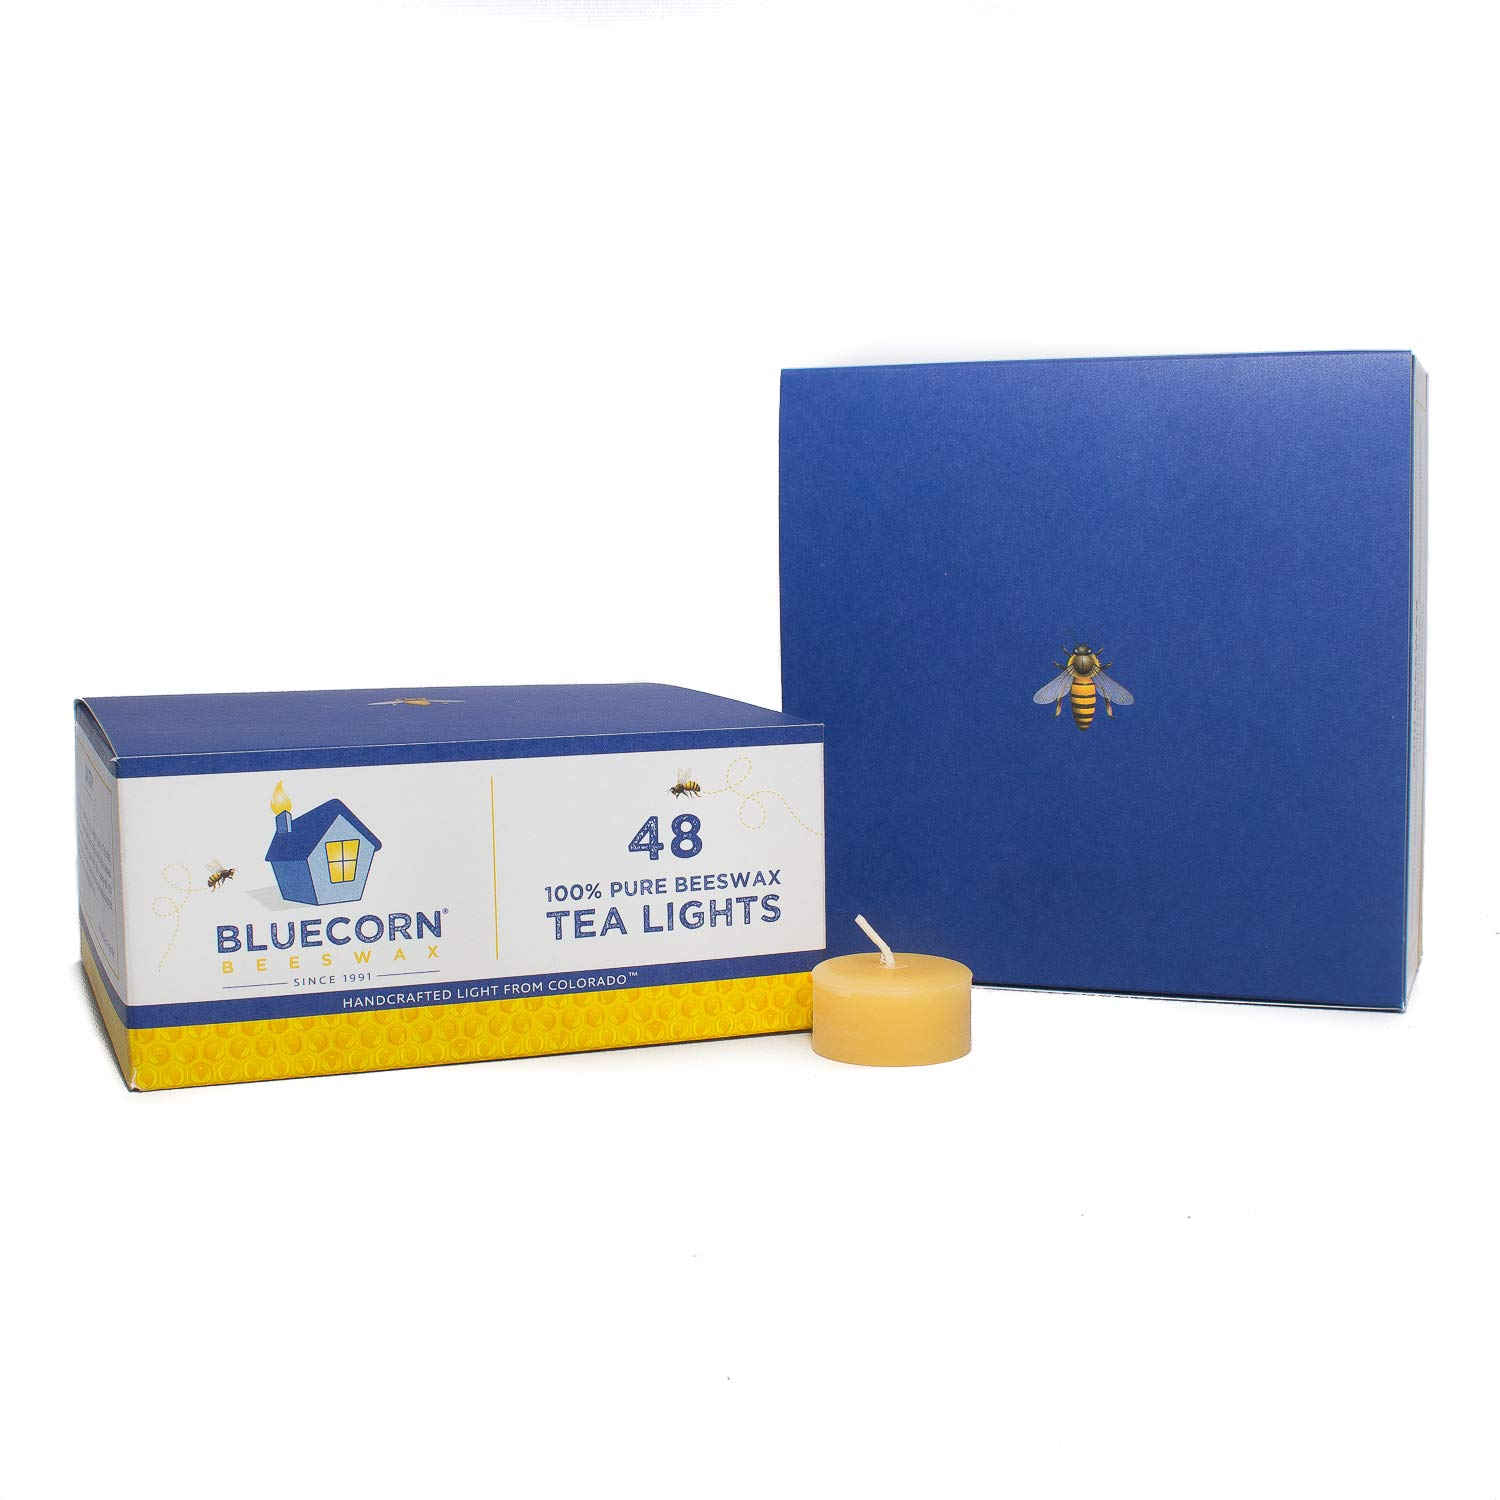 Bluecorn Beeswax 100% Pure Beeswax Tea Light Refills (no Cup) (Raw, 48 case)